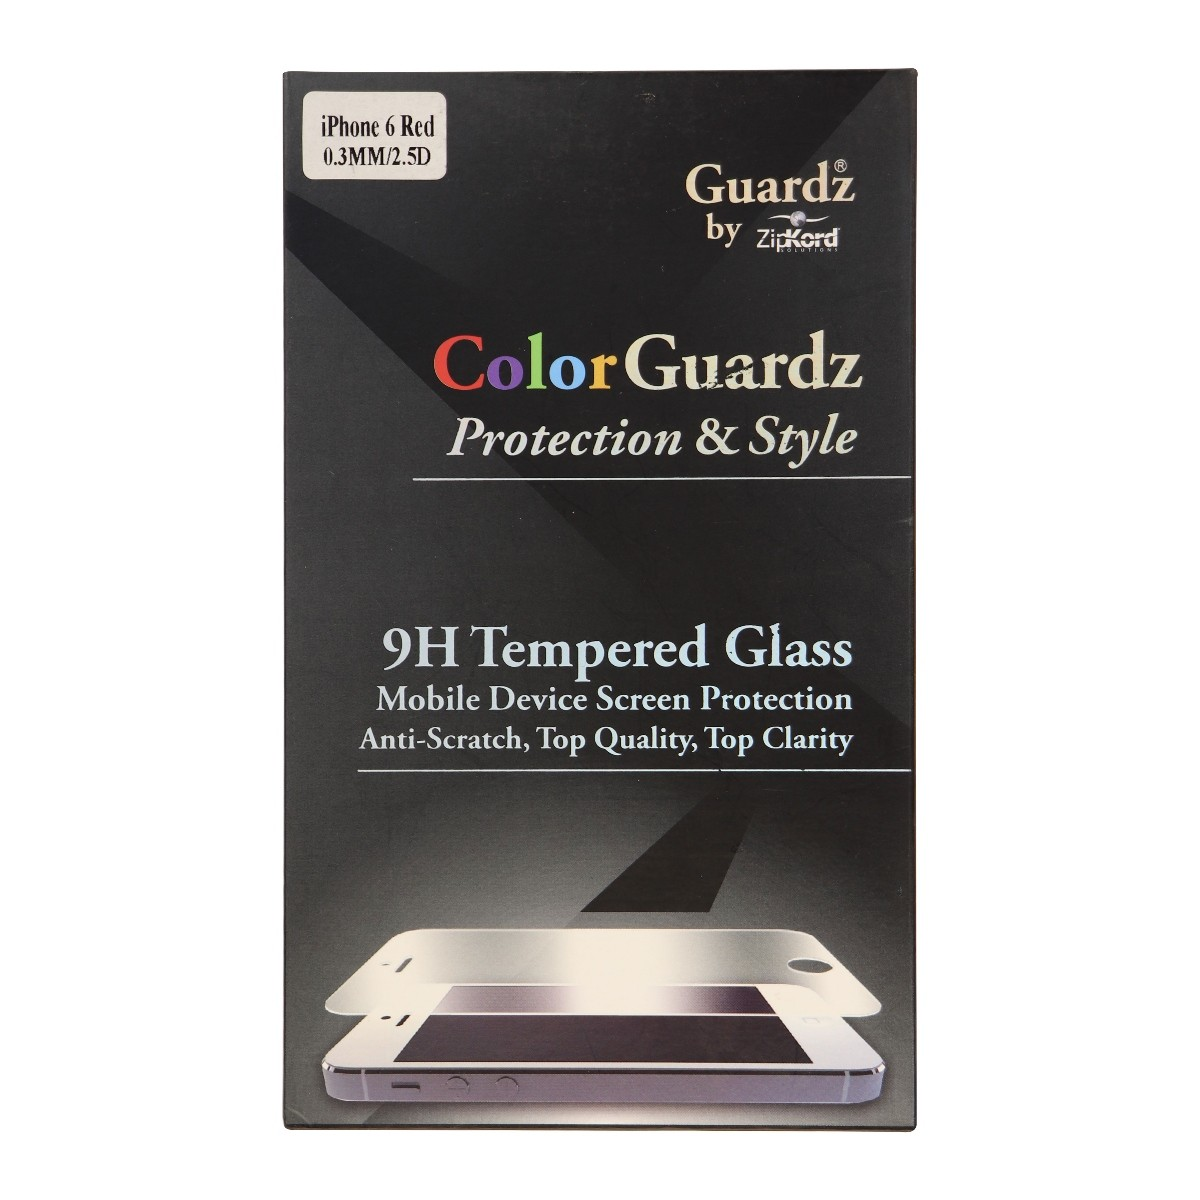 ZipKord ColorGuardz 9H Tempered Glass for iPhone 6s 6 - Metallic Red Border